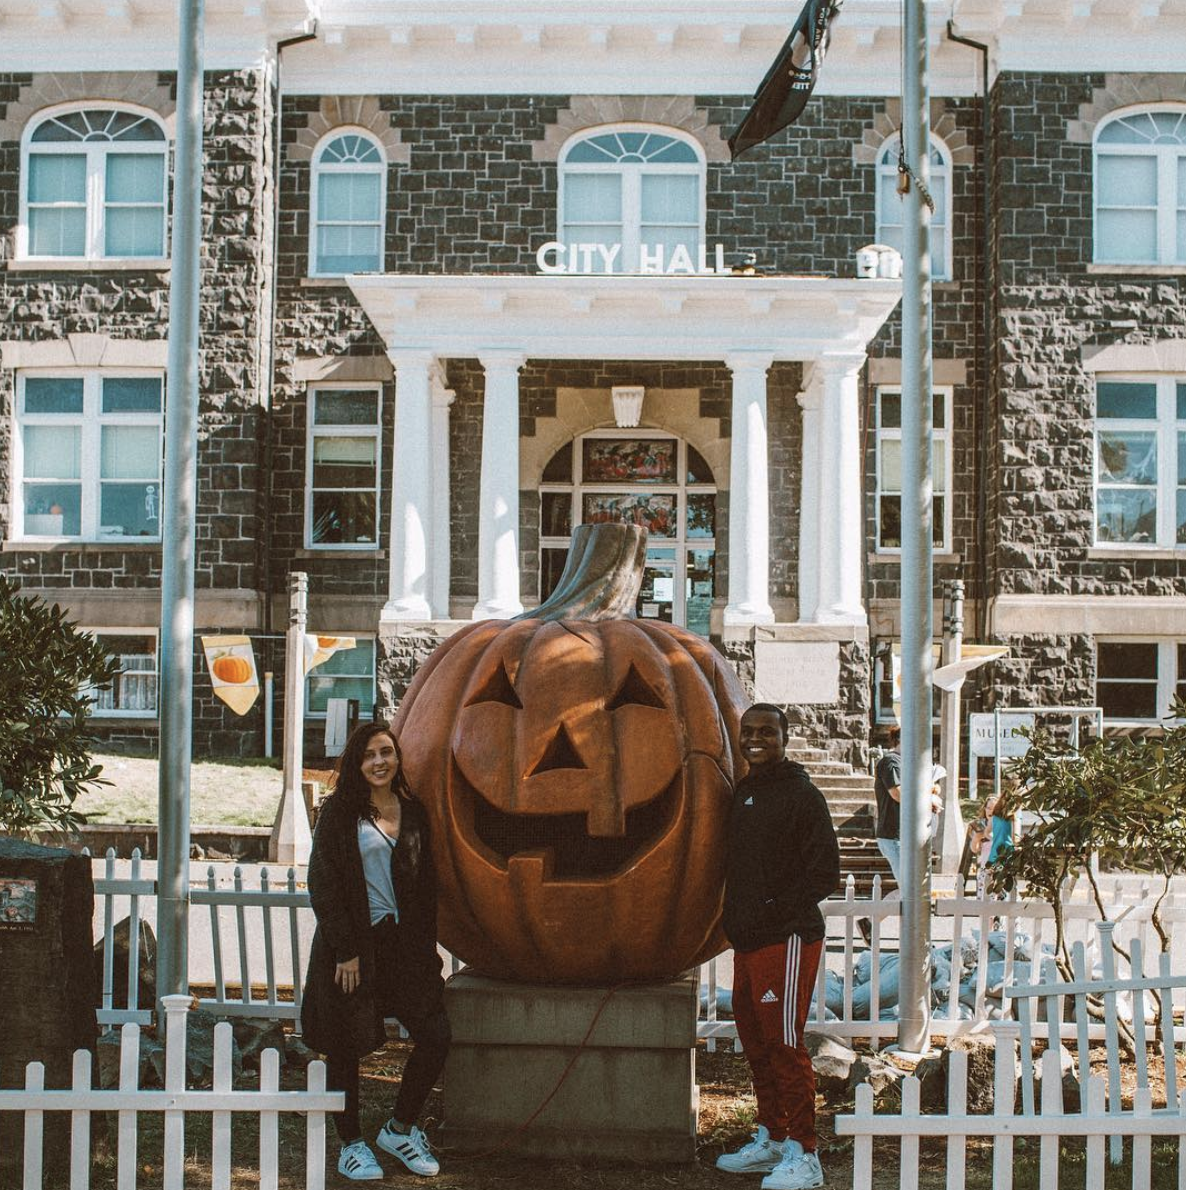 St. Helens actually has an annual month-long Spirit Of Halloweentown festival in the fall to celebrate the film.